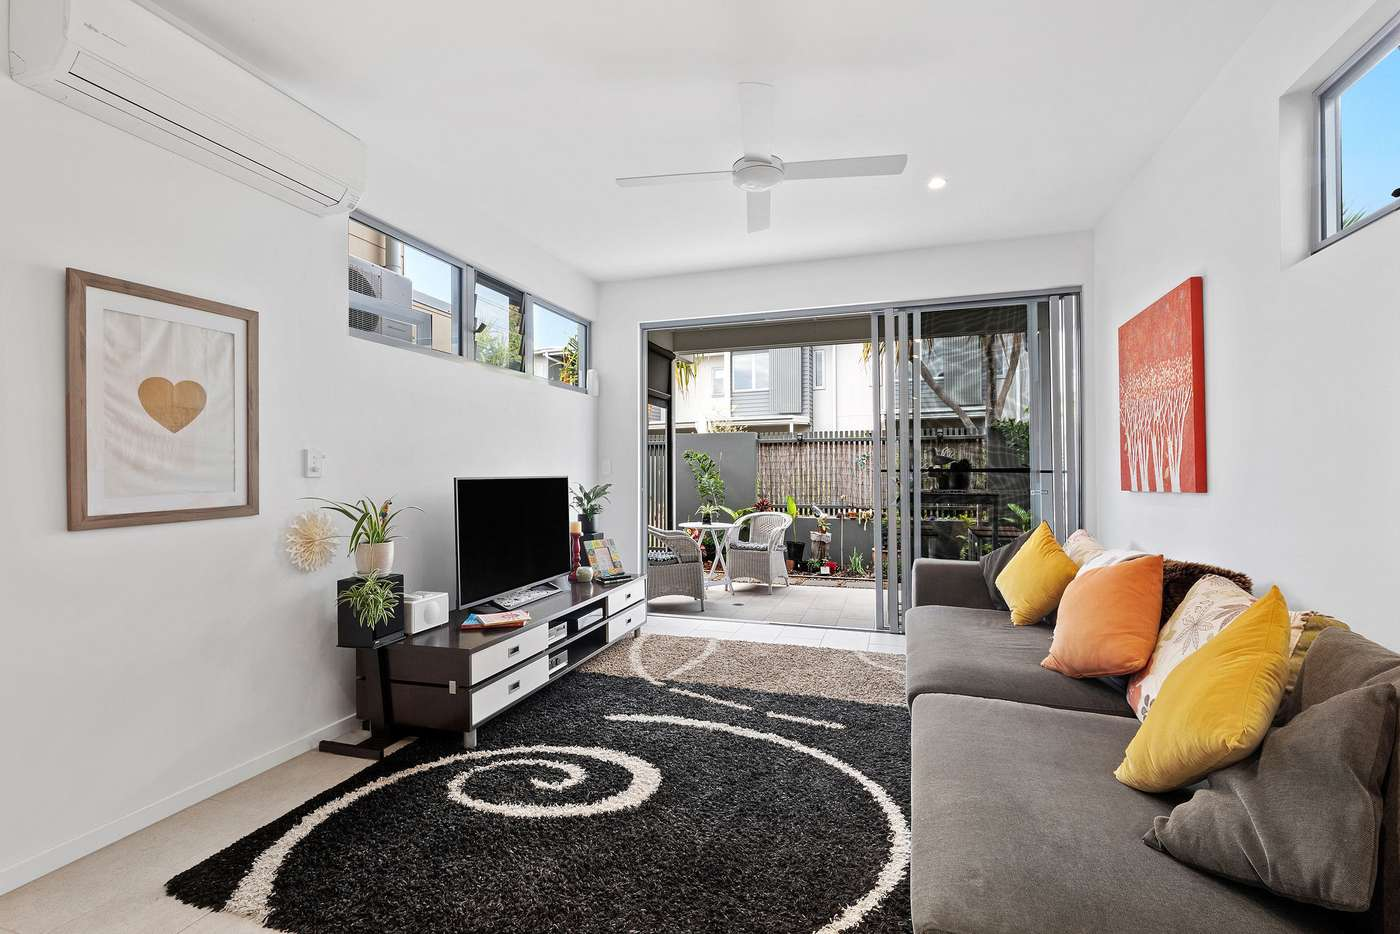 Fifth view of Homely townhouse listing, Unit 8/19 Riviera Pl, Mountain Creek QLD 4557